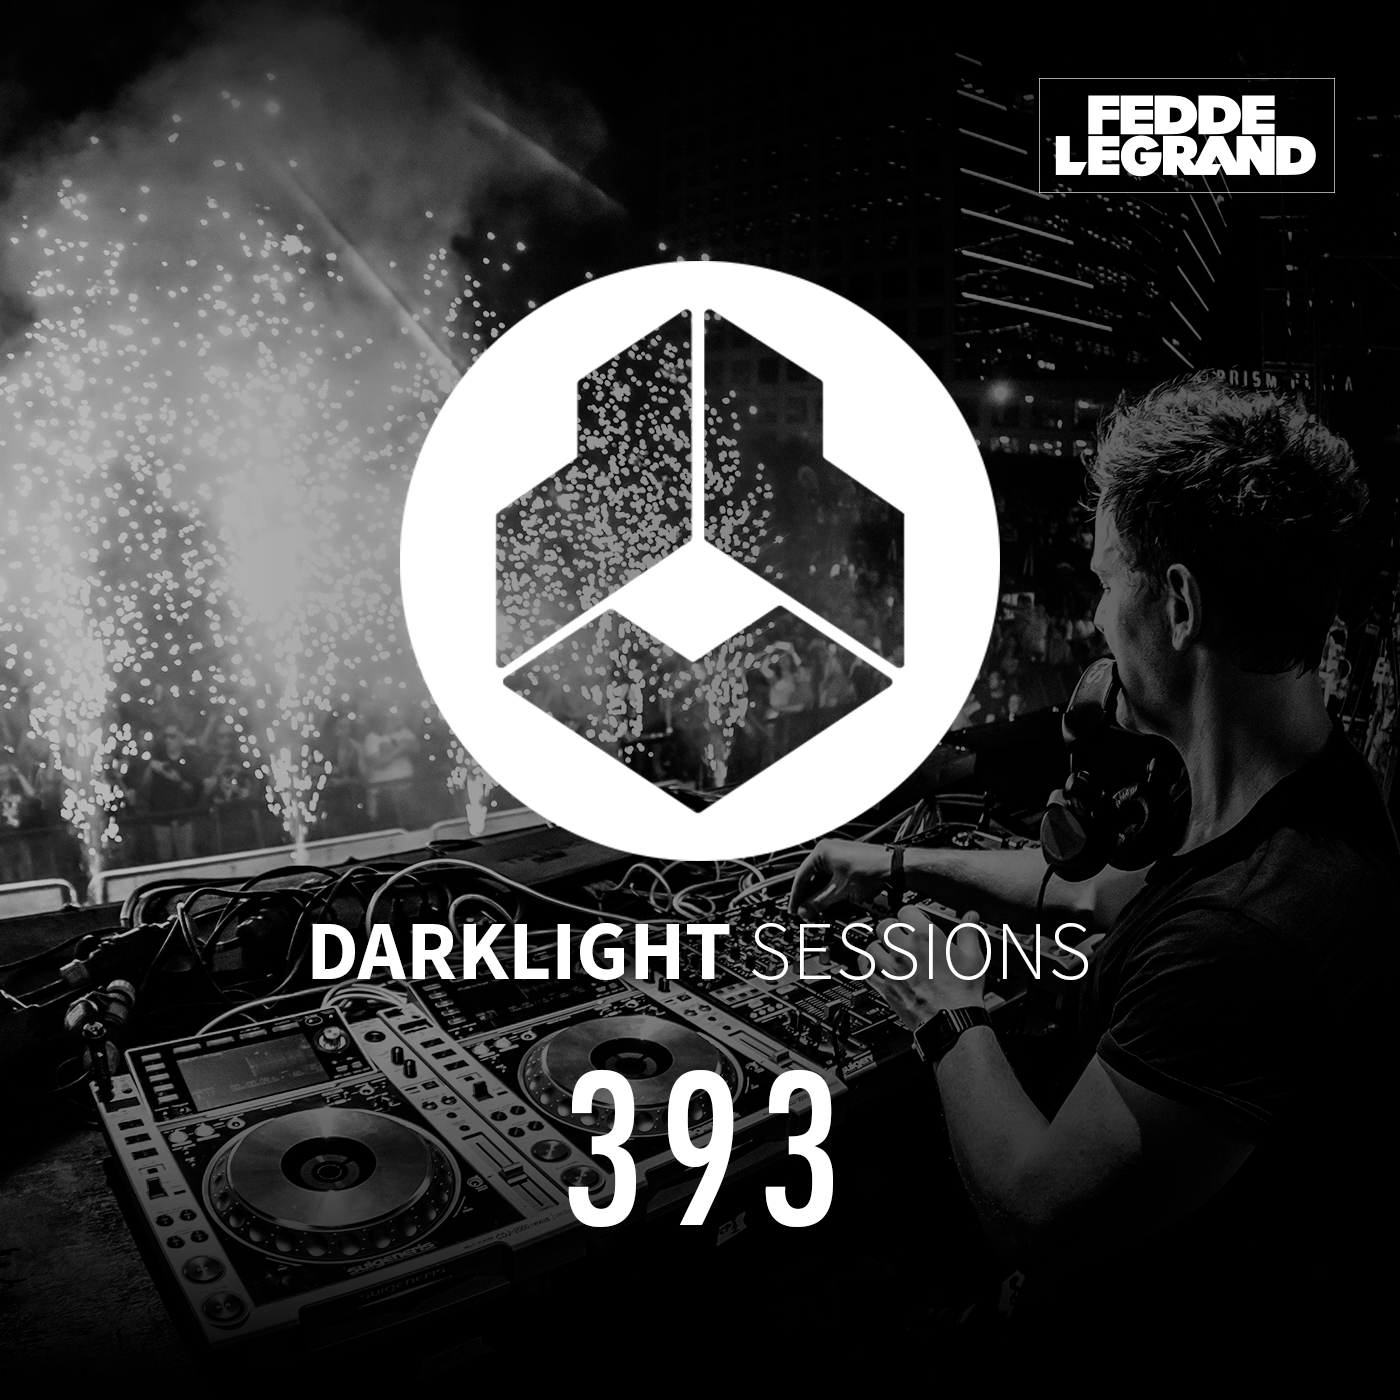 Darklight Sessions 393